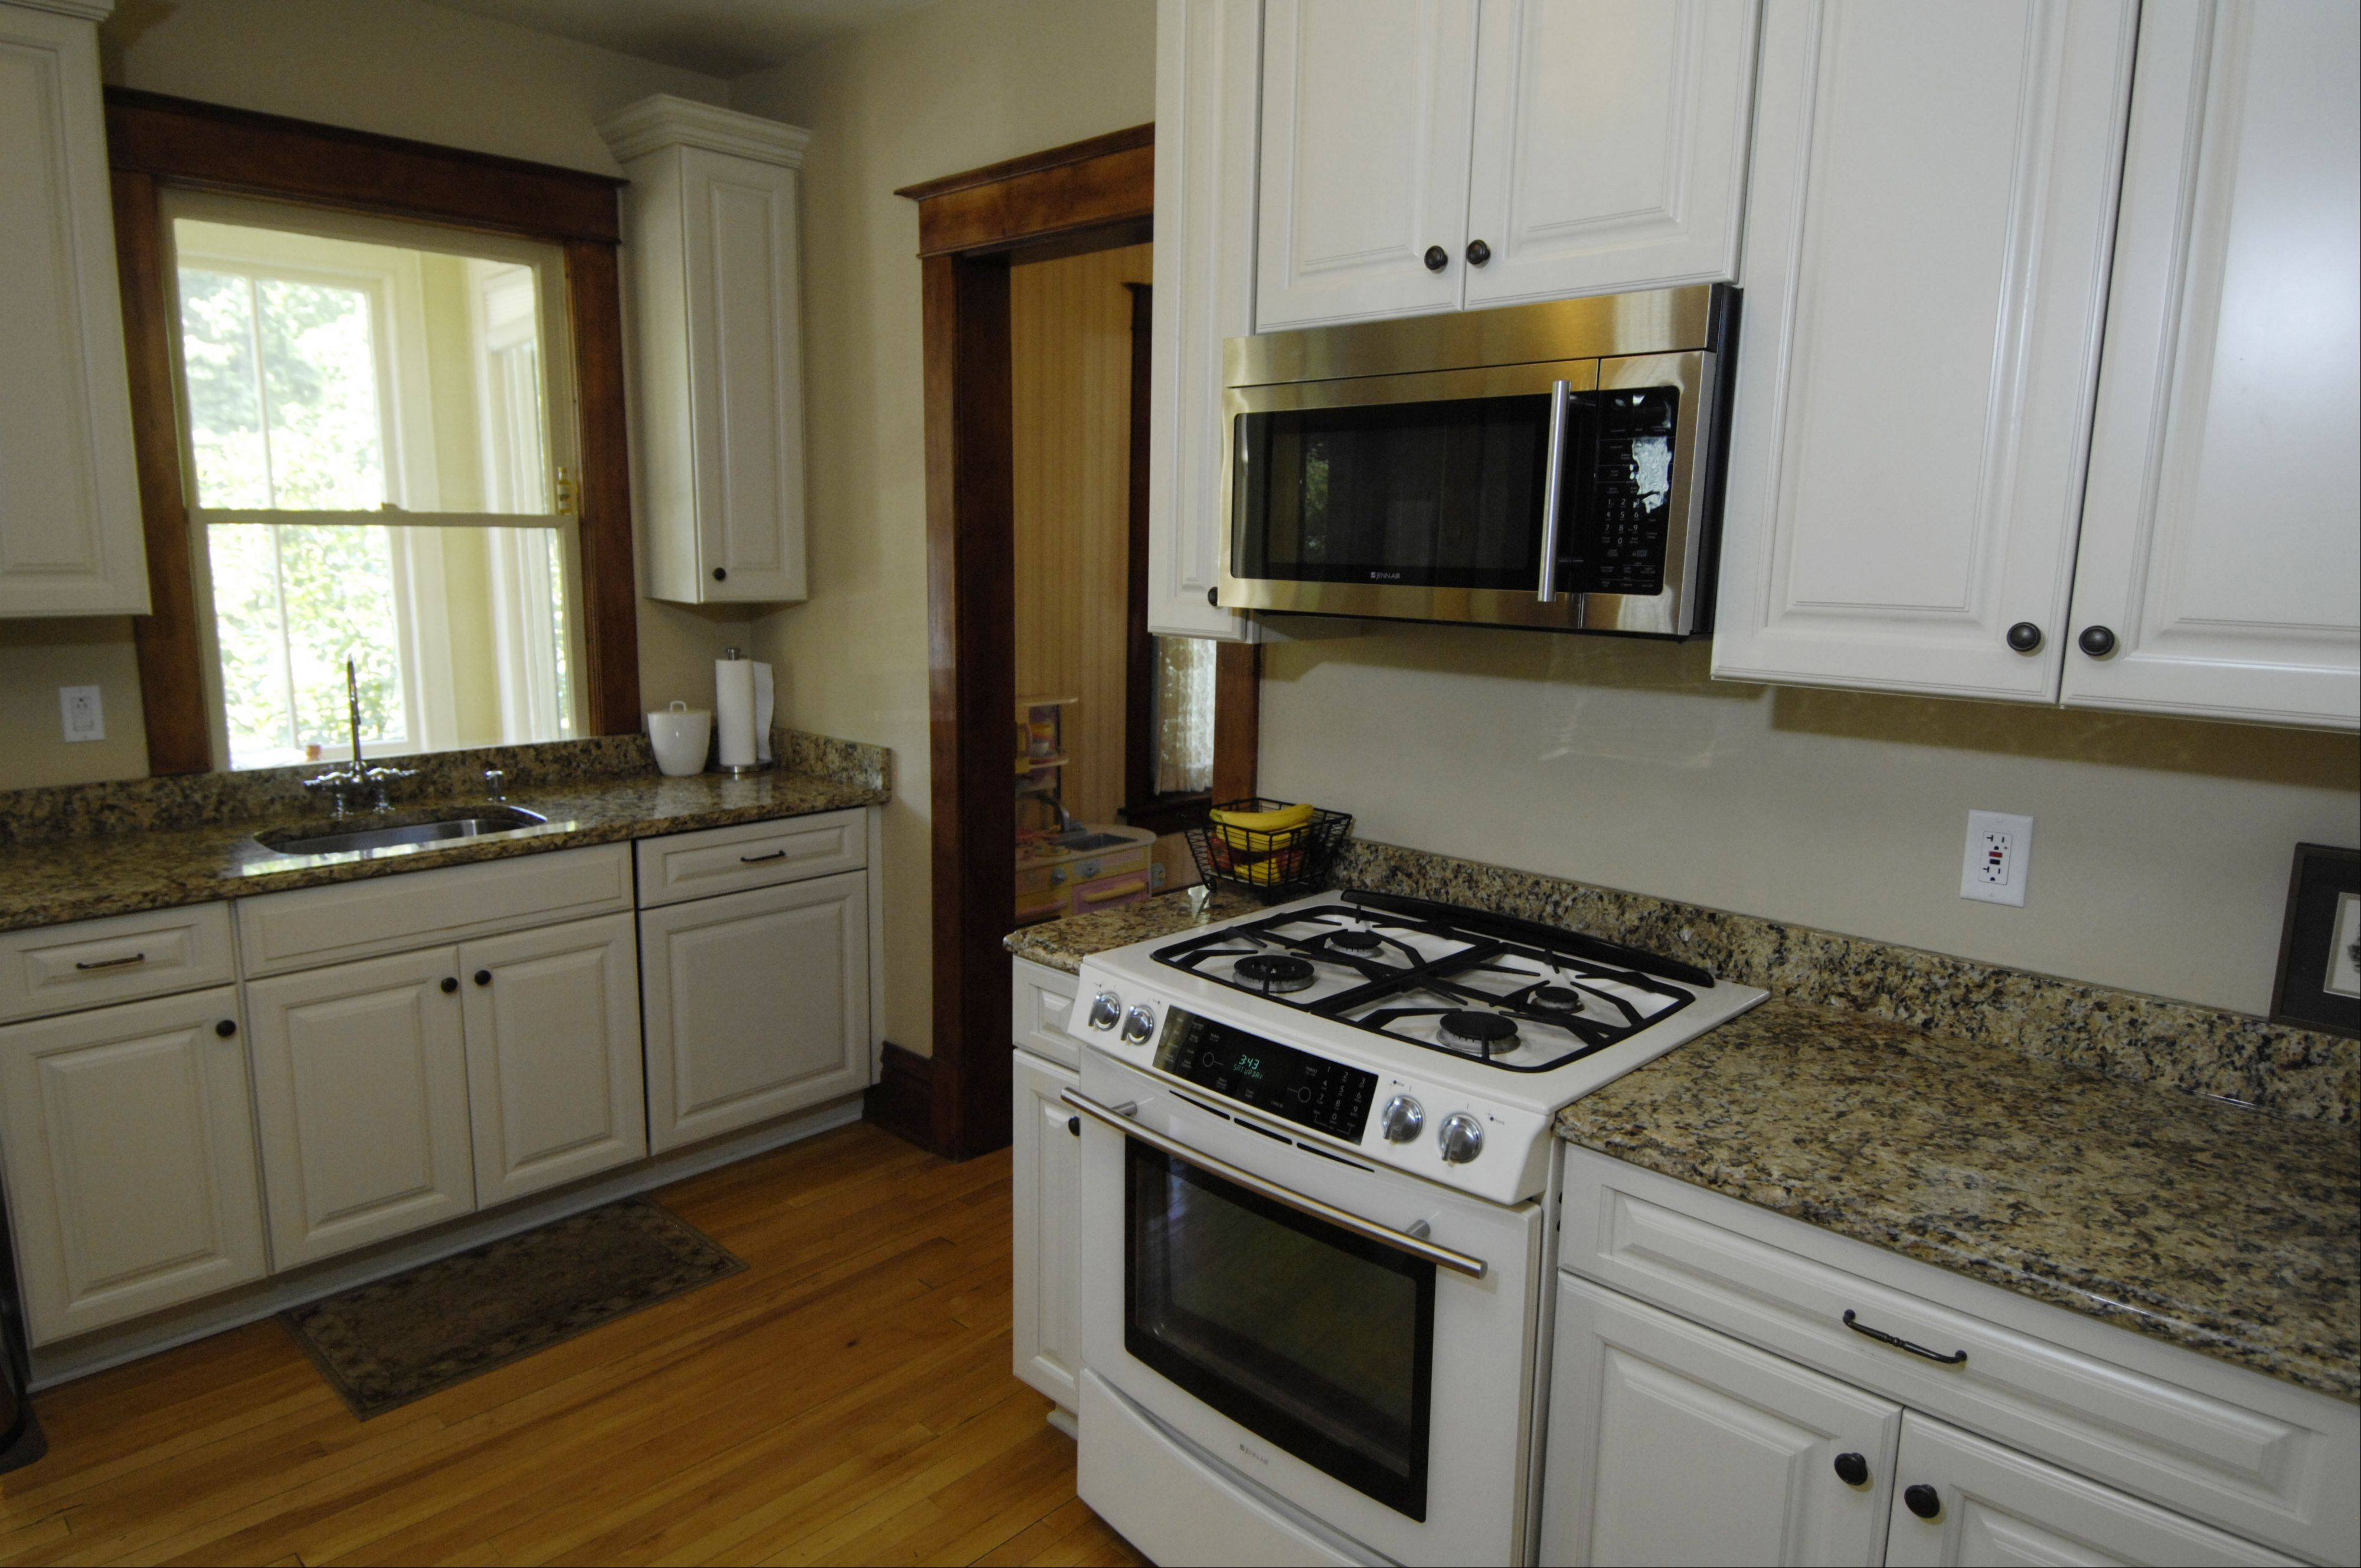 Redoing the kitchen was the major work the Brauns did in their Arlington Heights home.